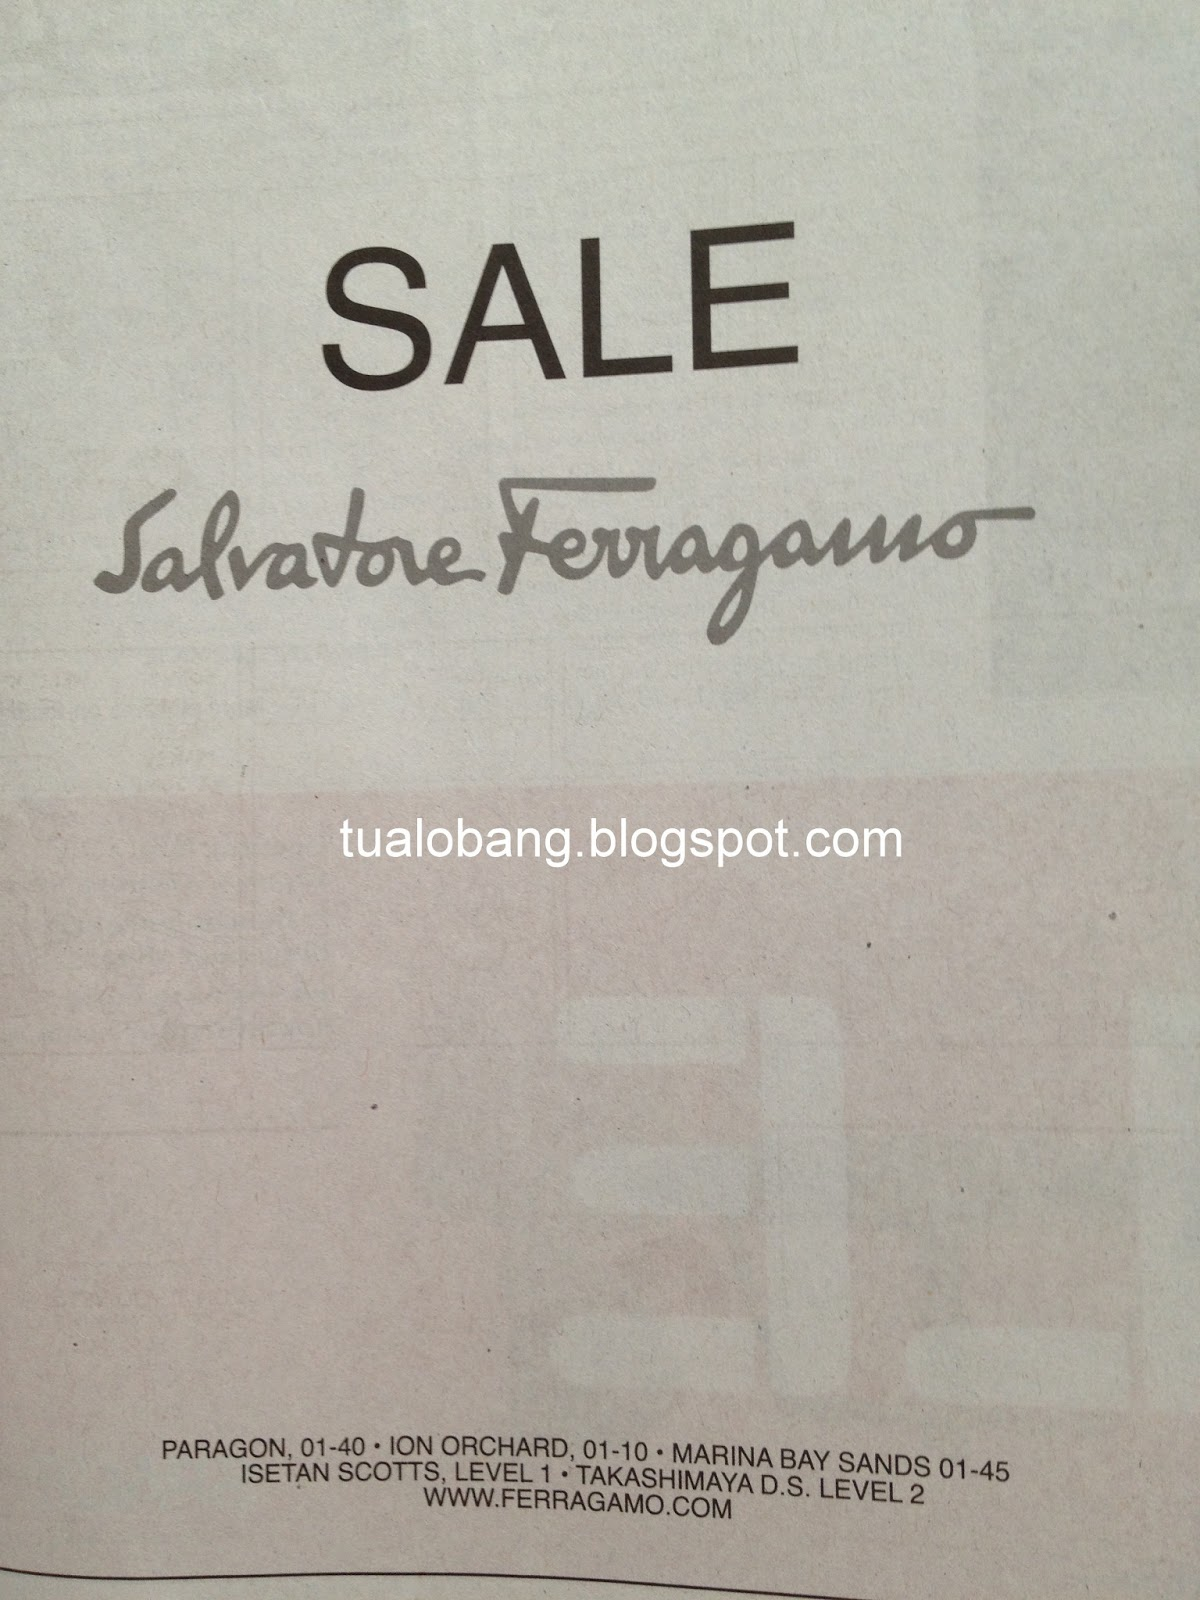 tua lobang salvatore ferragamo sale. Black Bedroom Furniture Sets. Home Design Ideas